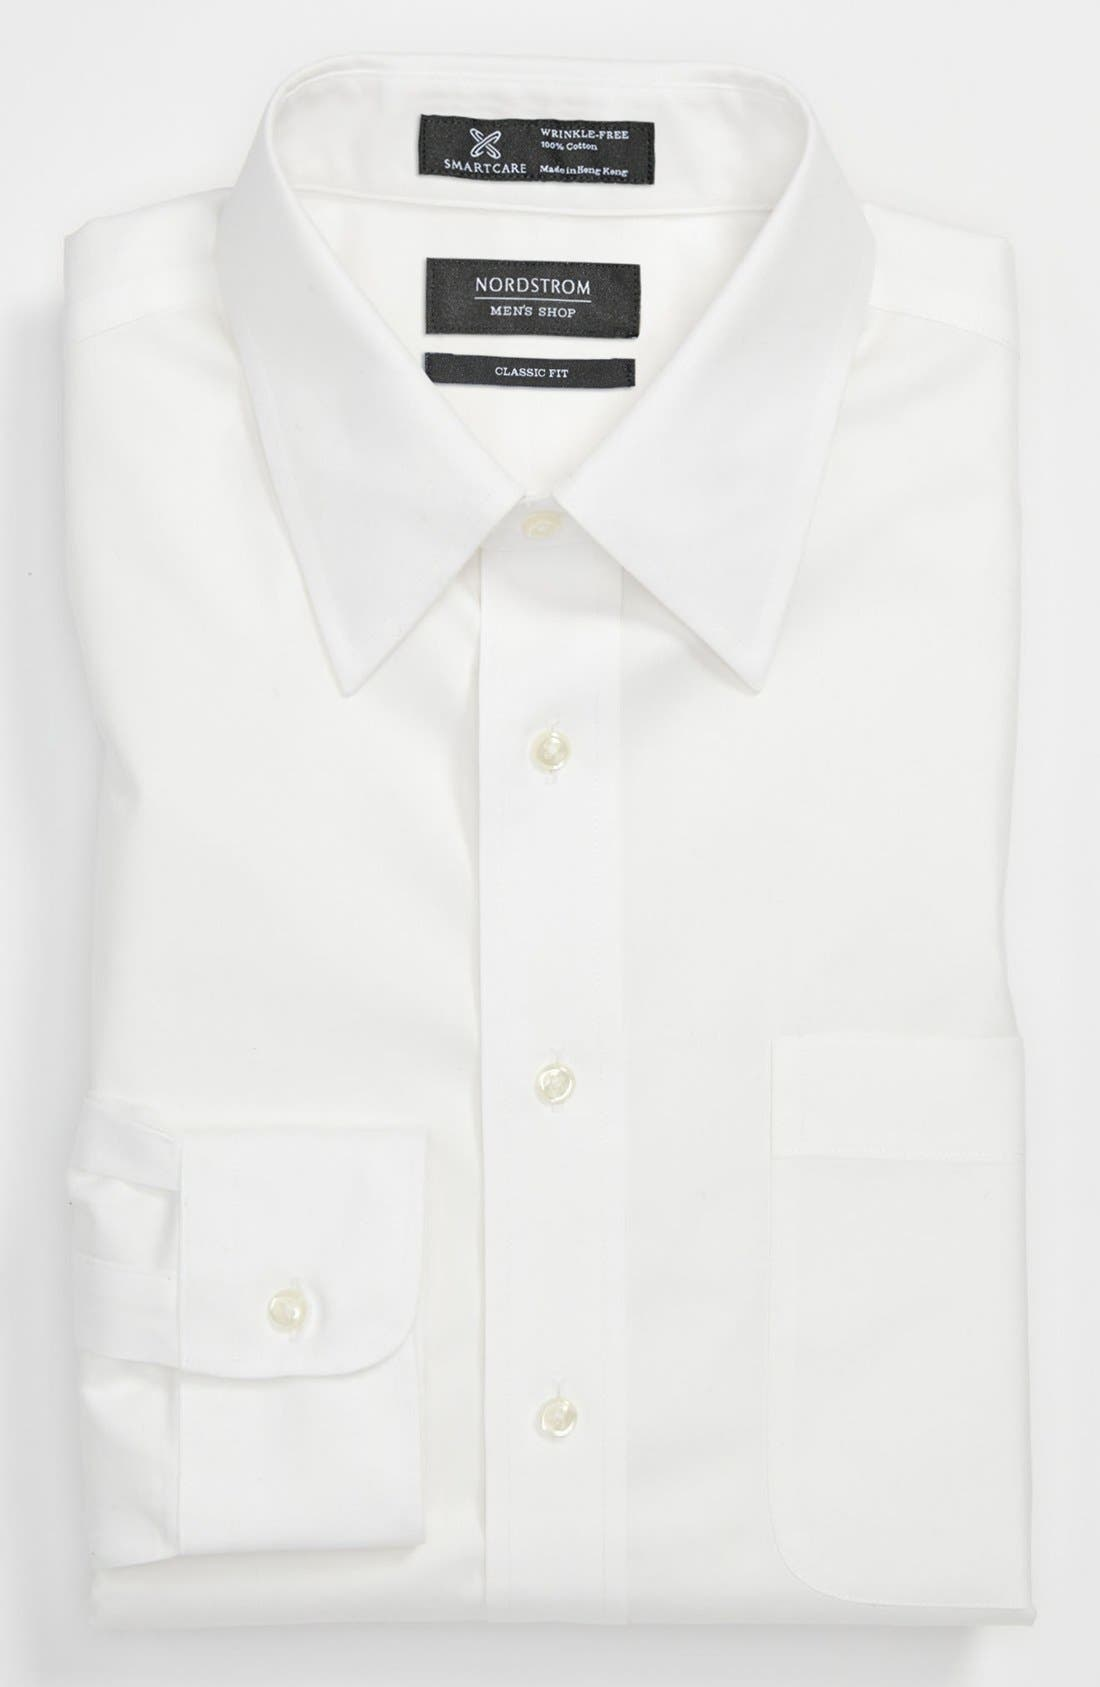 Nordstrom Shop Smartcare(TM) Classic Fit Solid Dress Shirt - White (Online Only)